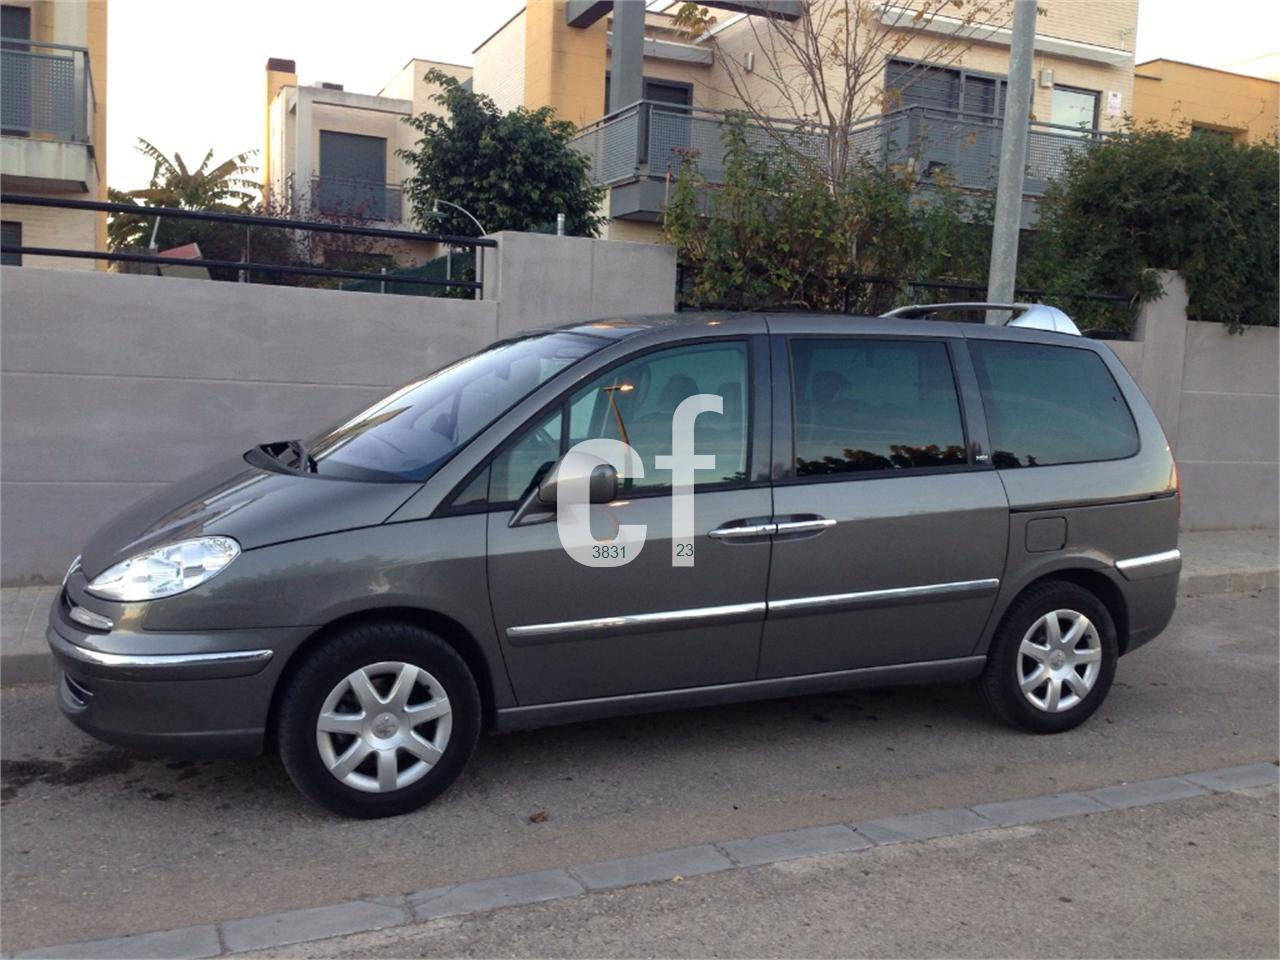 toyota 2014 sienna owners manual pdf download autos post 2003 Highlander 2014 highlander owners manual